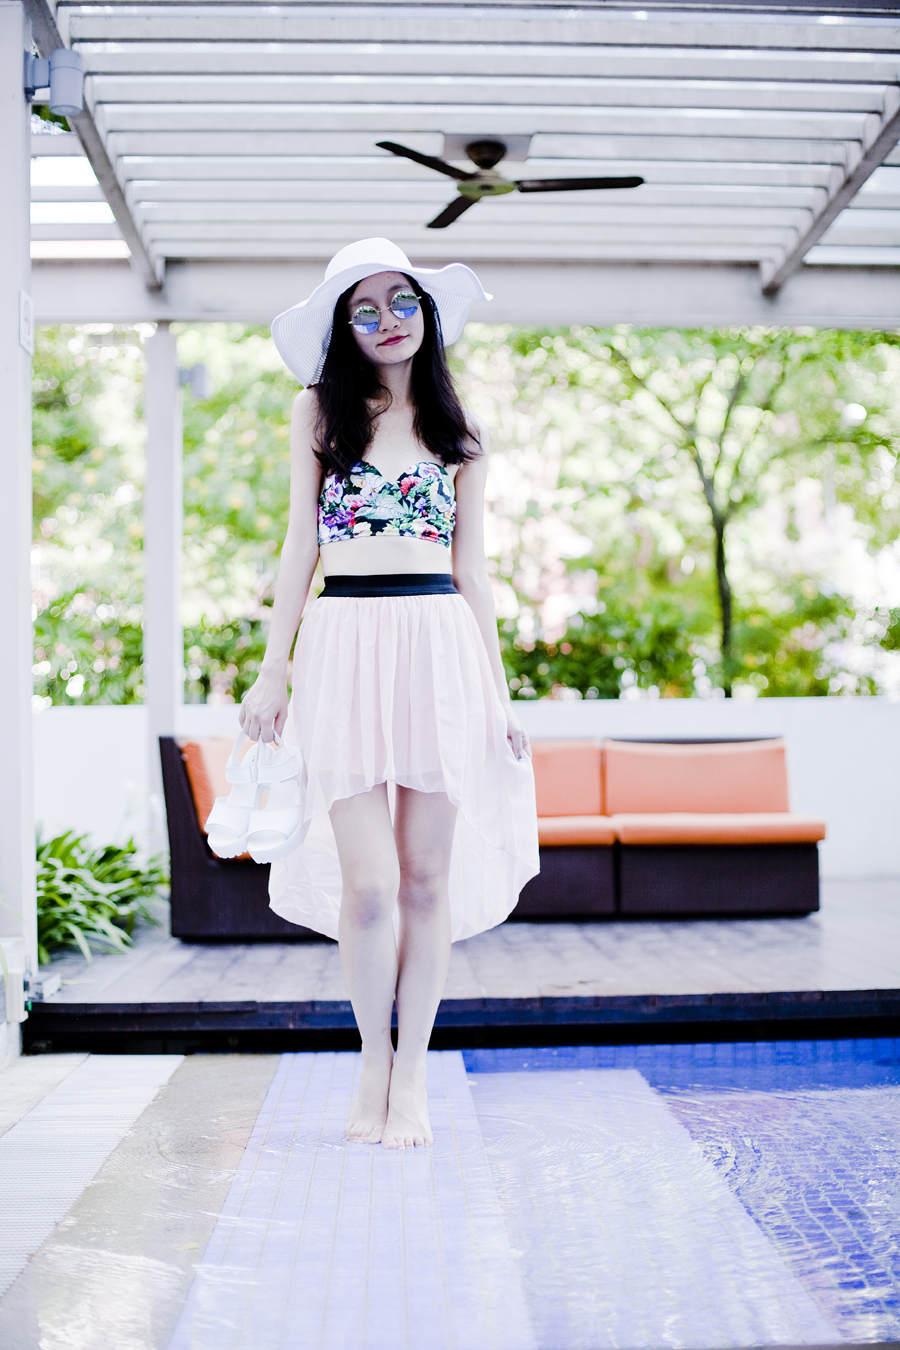 Outfit details: Choies Opal Halterneck Bikini in Cottage Garden Floral Print swimsuit, Silver mirror sunglasses from Taobao, White wide brim beach hat from Taobao, White platform sandals from Taobao, Light pink high-low skirt from Korea.